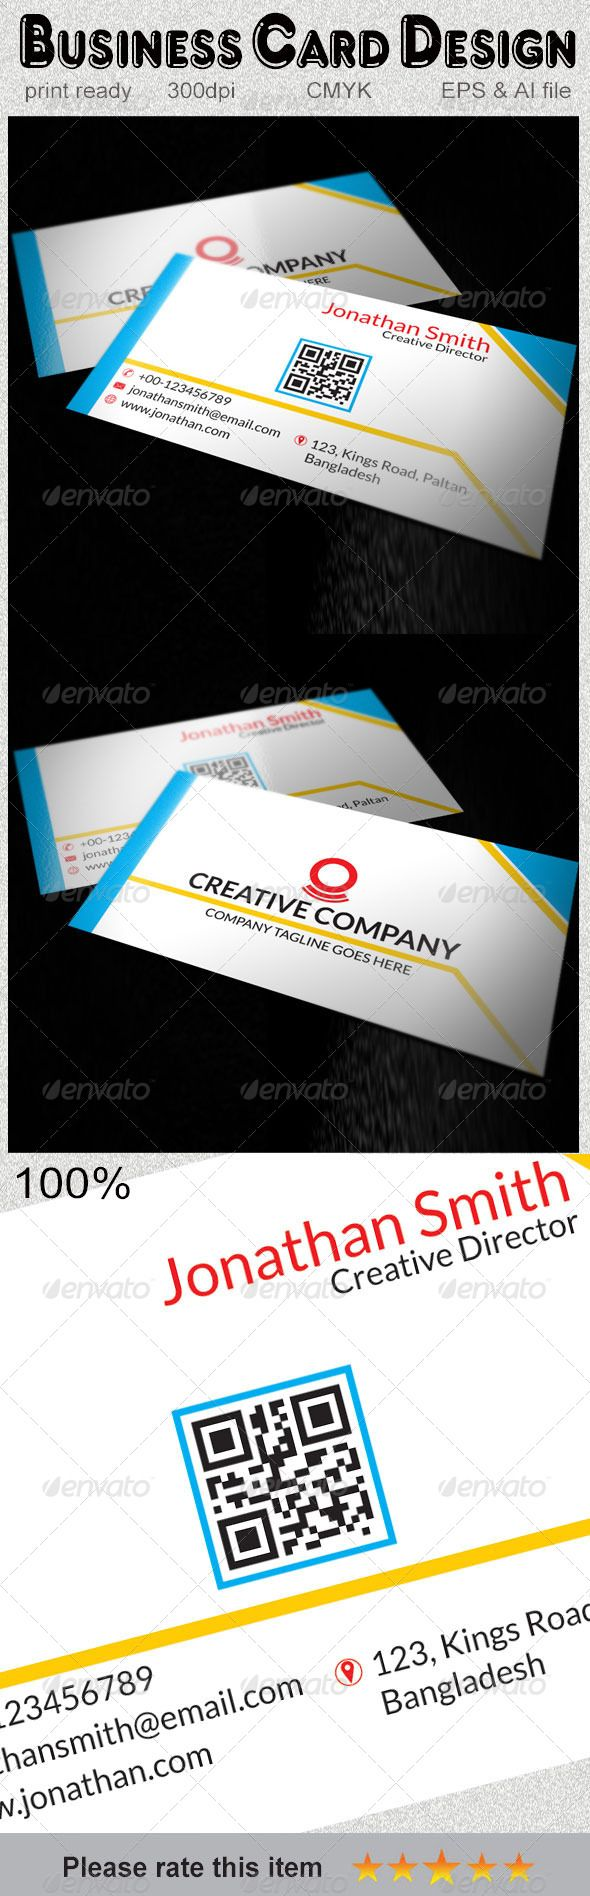 Business card printing in enfield images card design and card template business cards printing derby choice image card design and card business cards printing derby choice image reheart Gallery